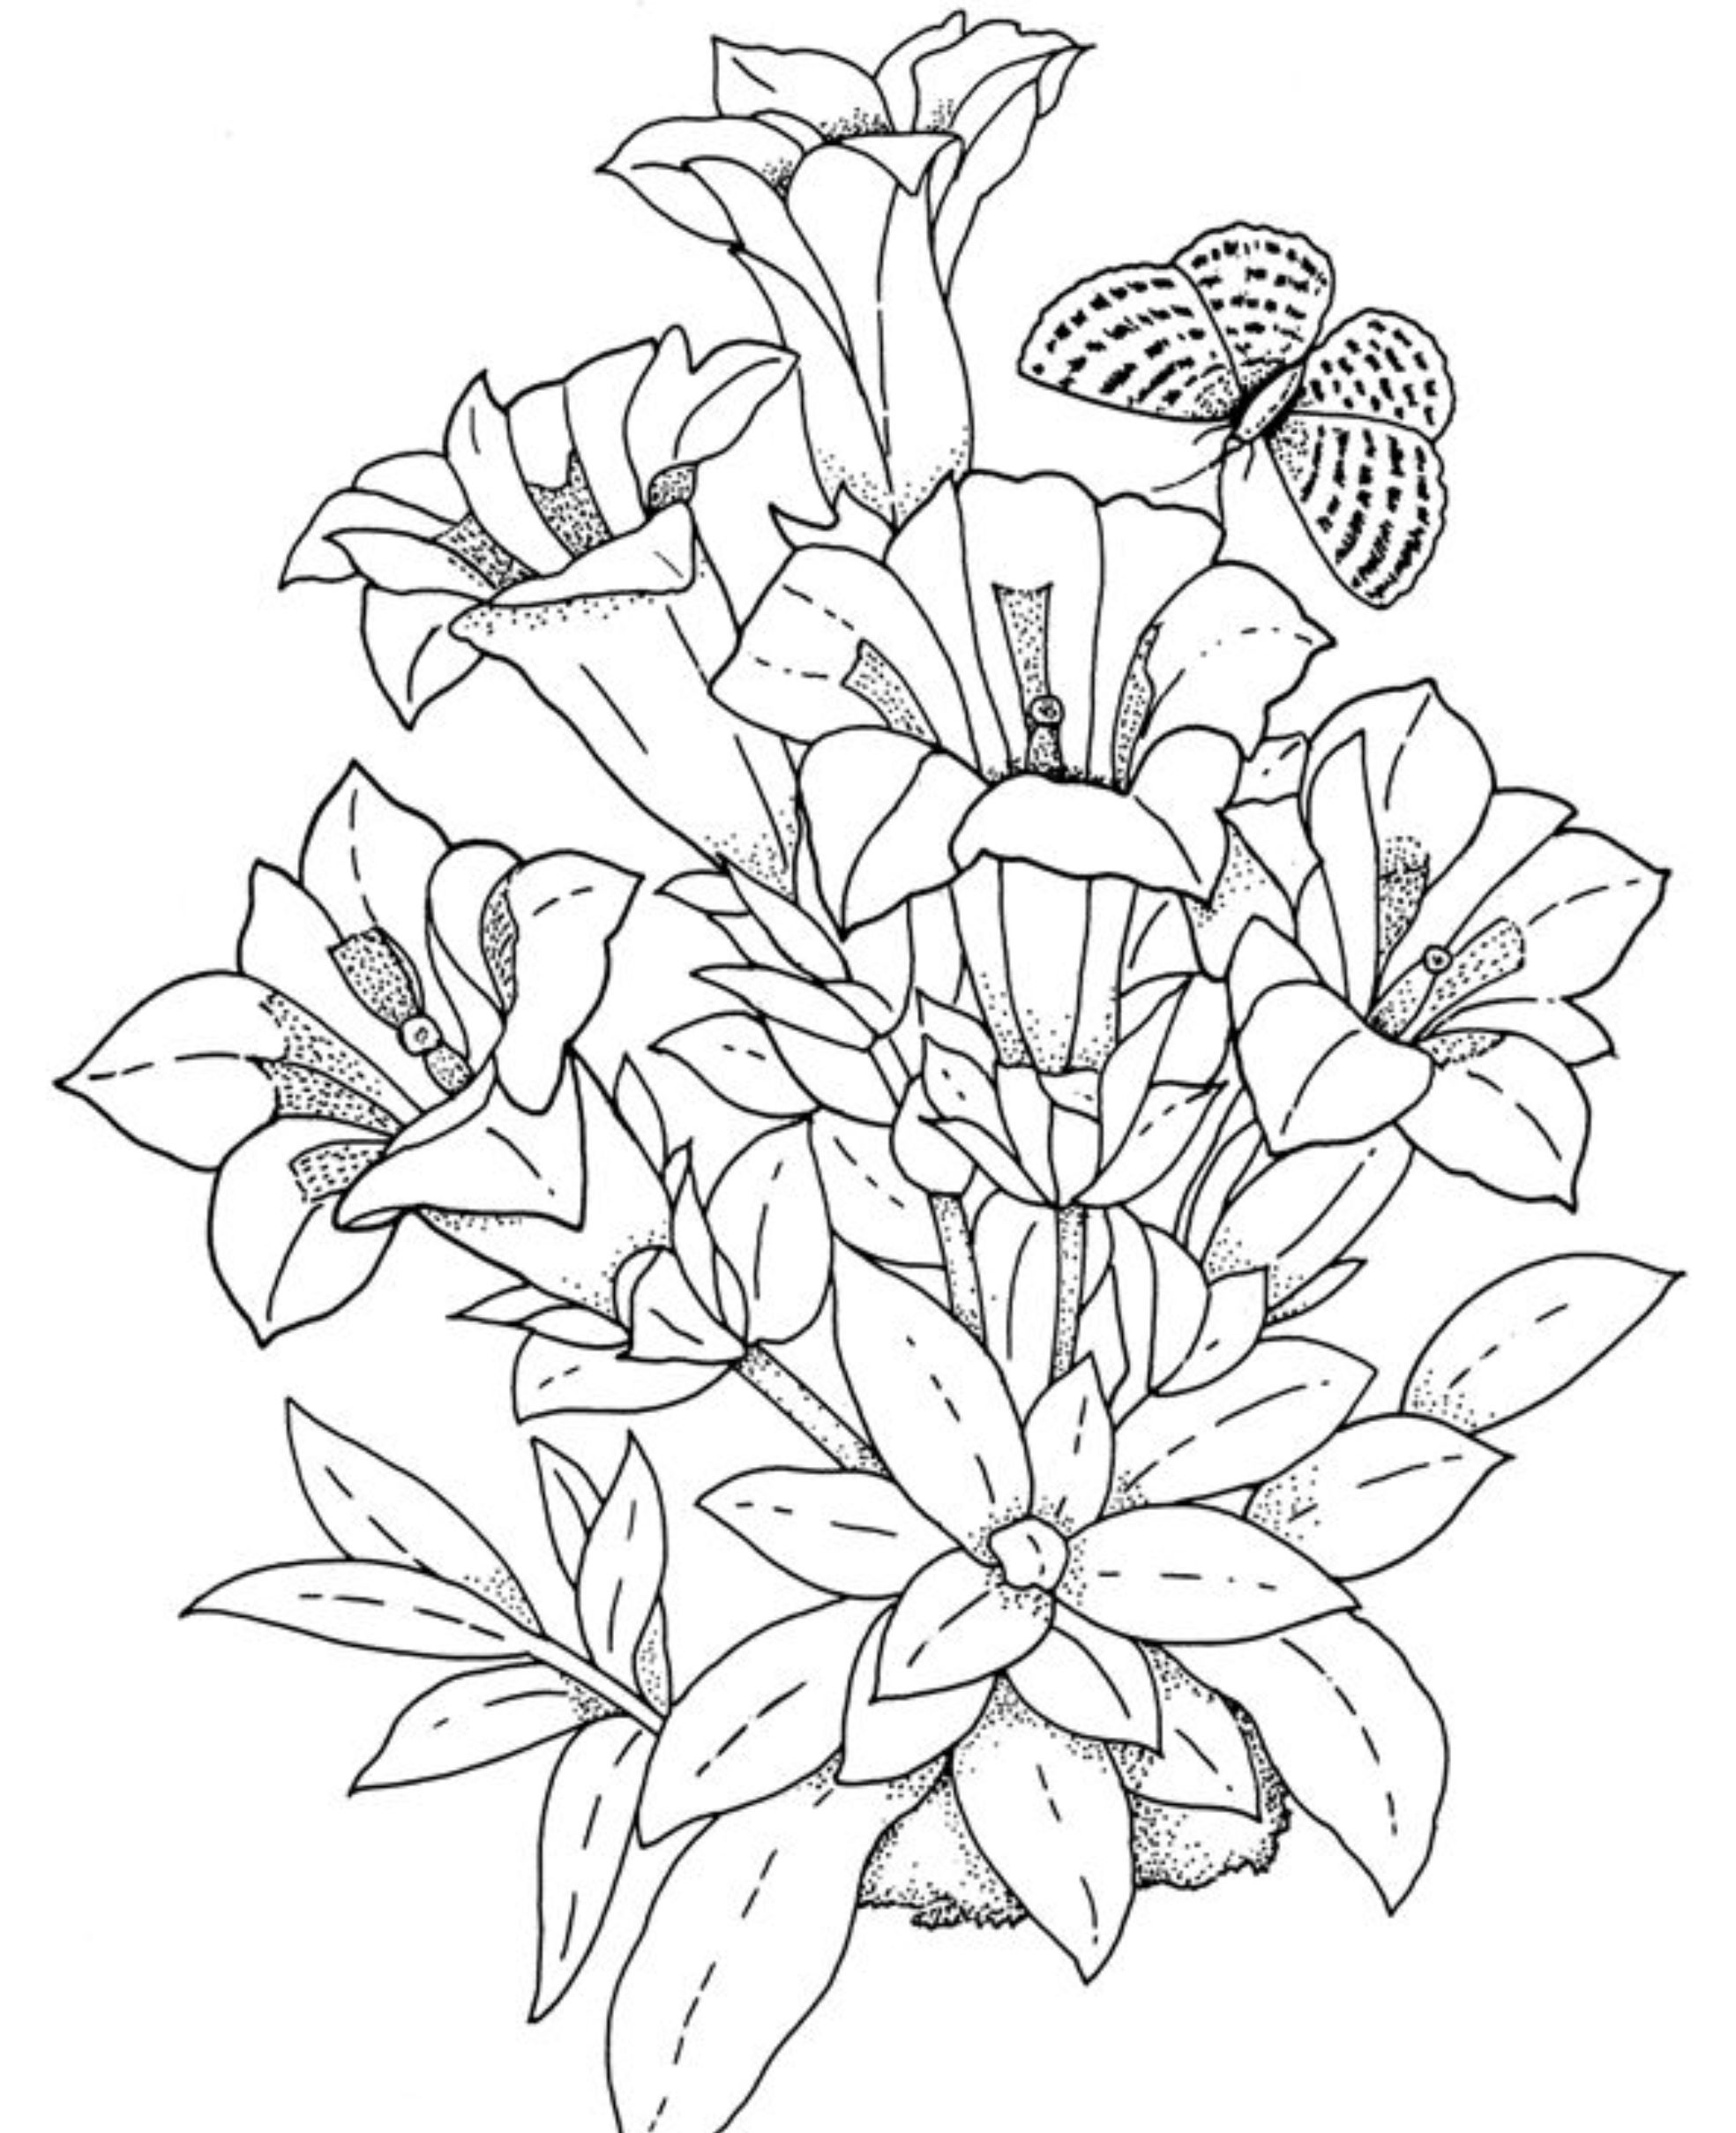 Coloring printouts flowers - Download And Print Realistic Flowers Coloring Pages